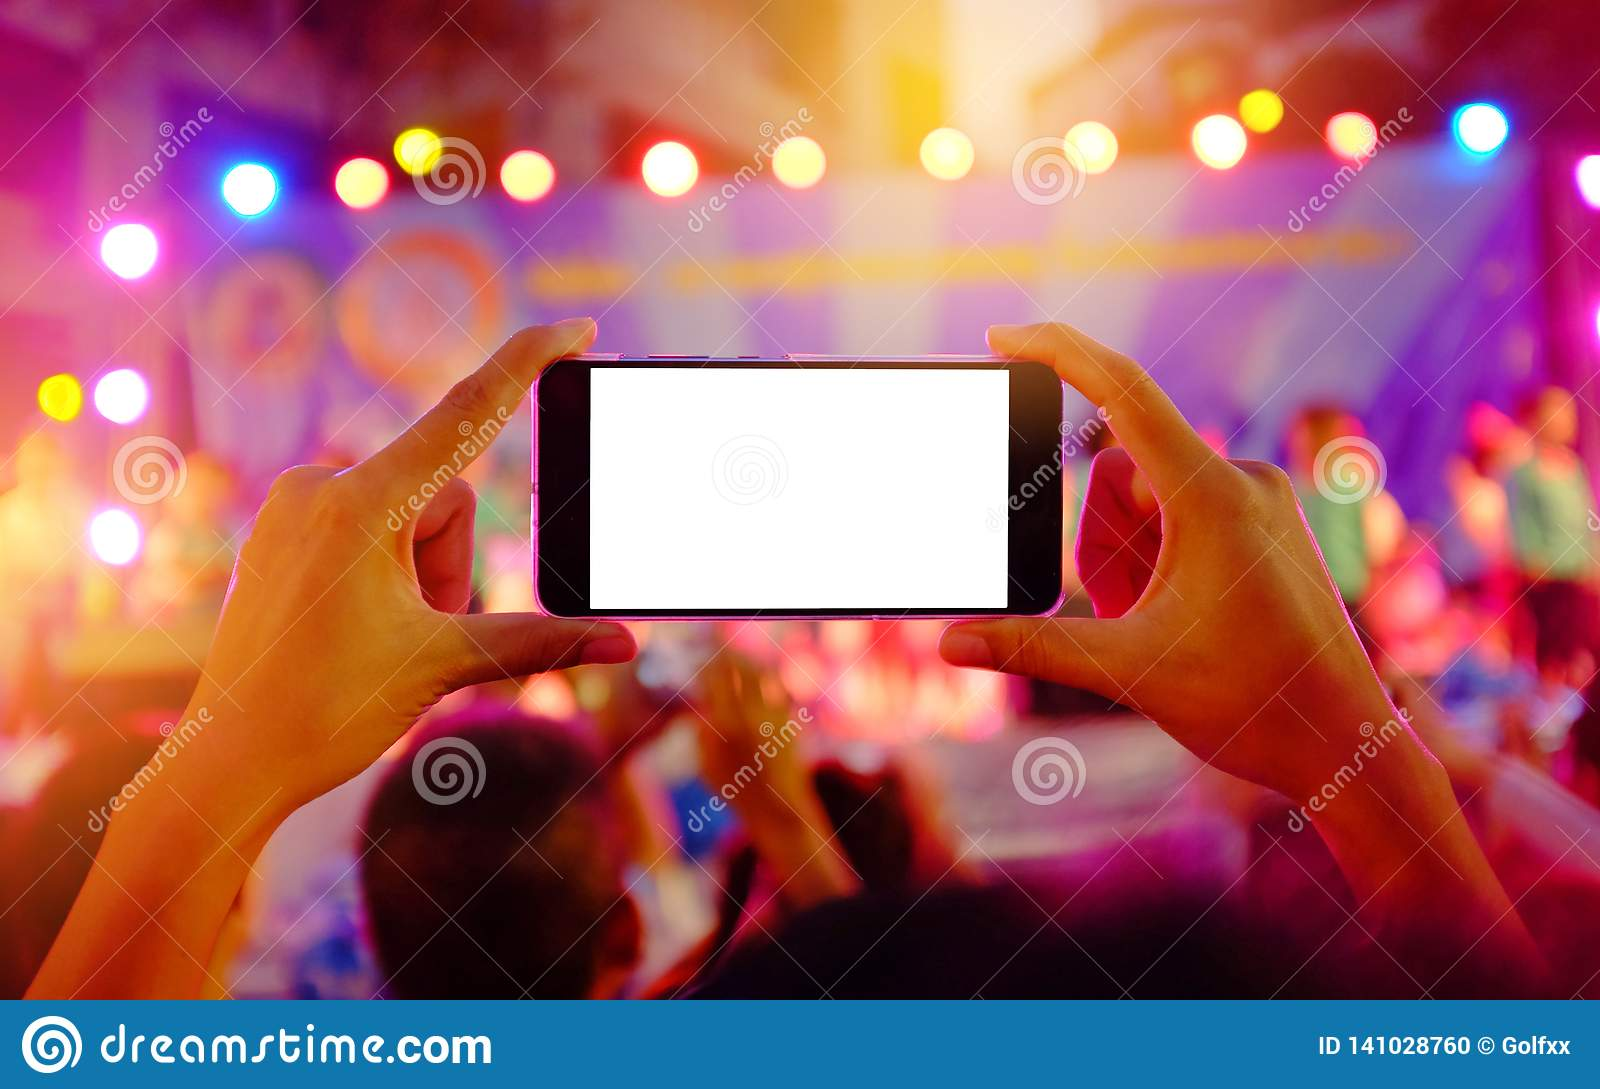 Hands holding a mobile smartphone records colorful live concert with blank white screen